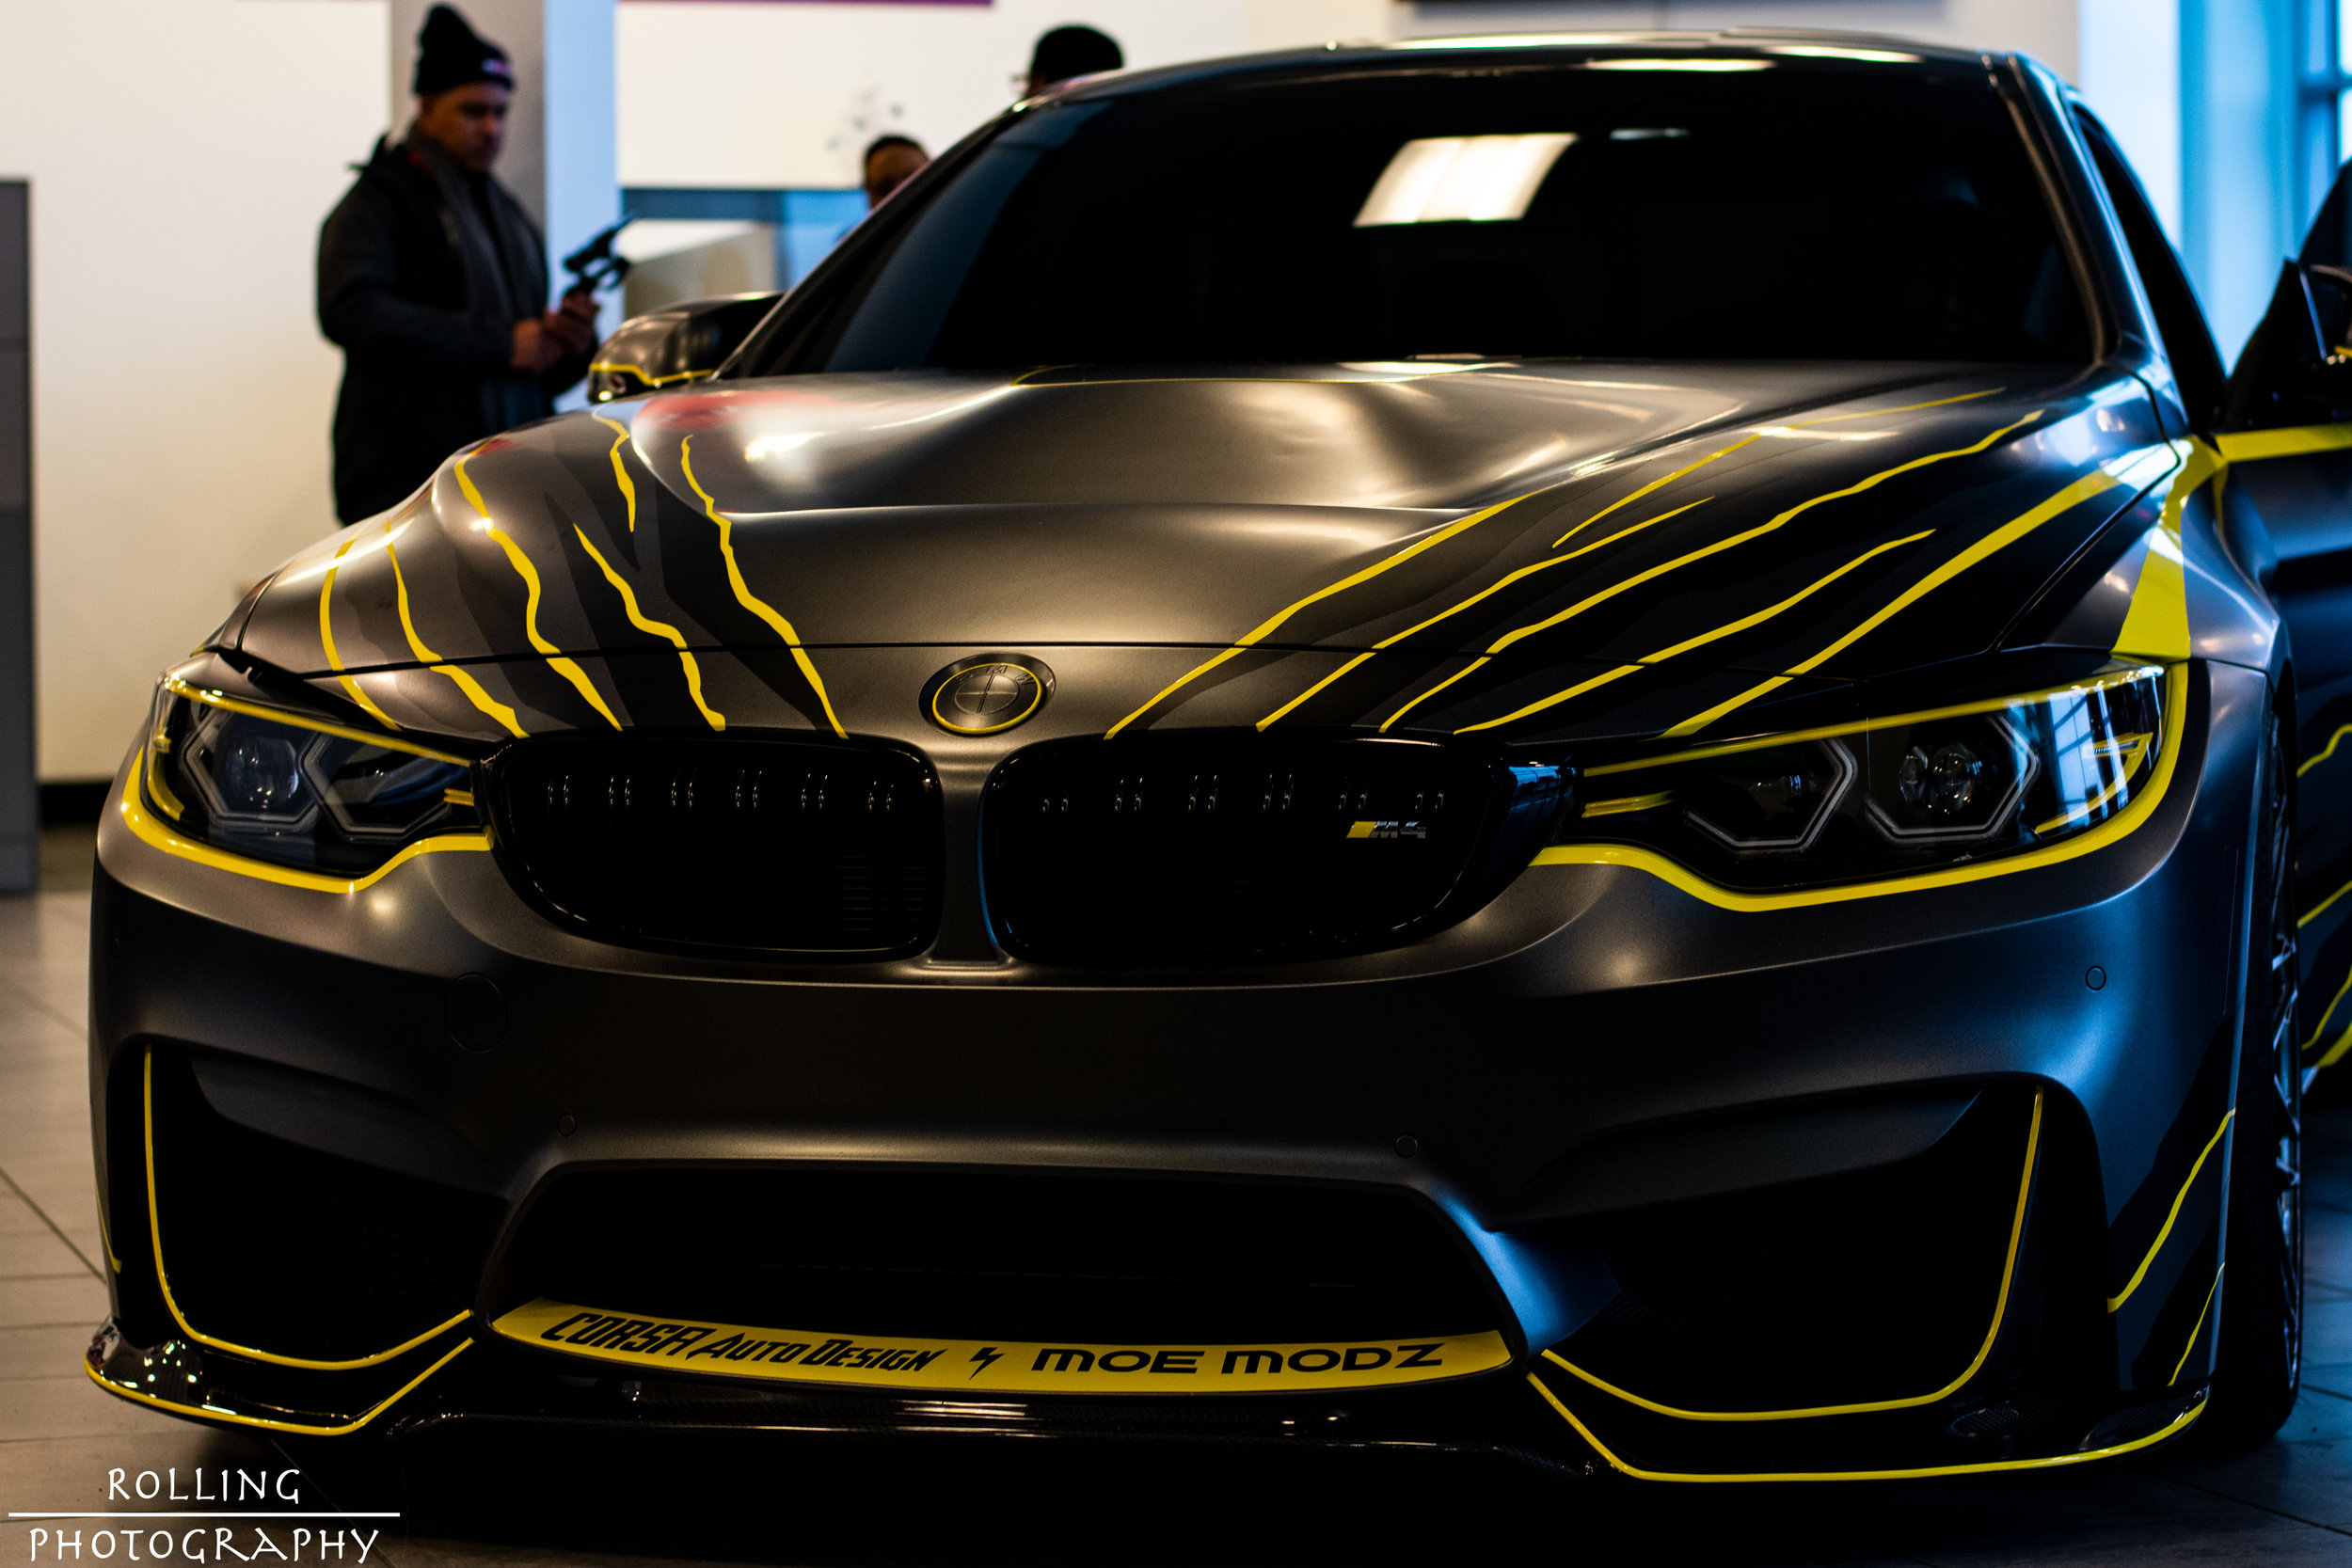 LightningM4 Front End Shot.jpg